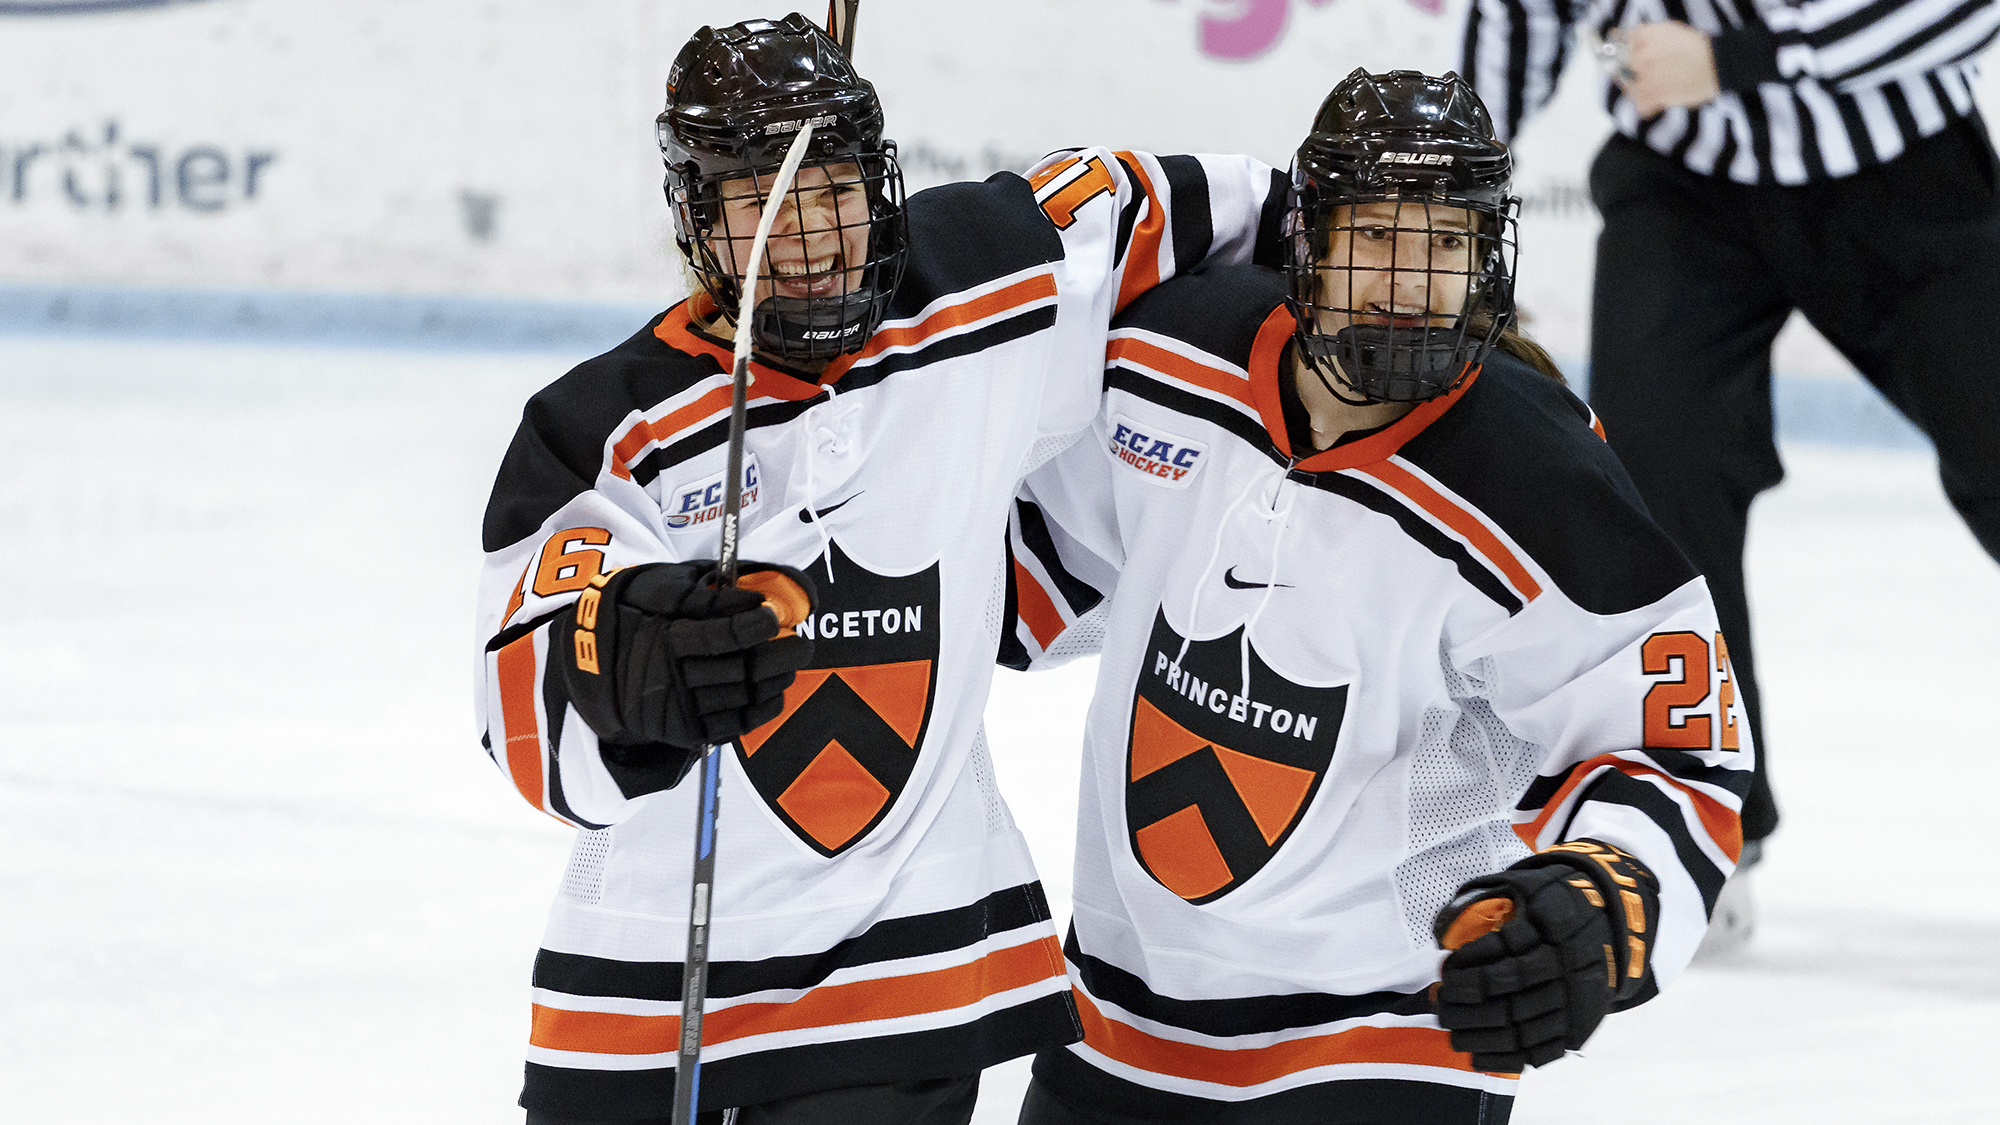 Princeton Ranked Fourth Connors Wins Ecac Hockey Player Of The Week